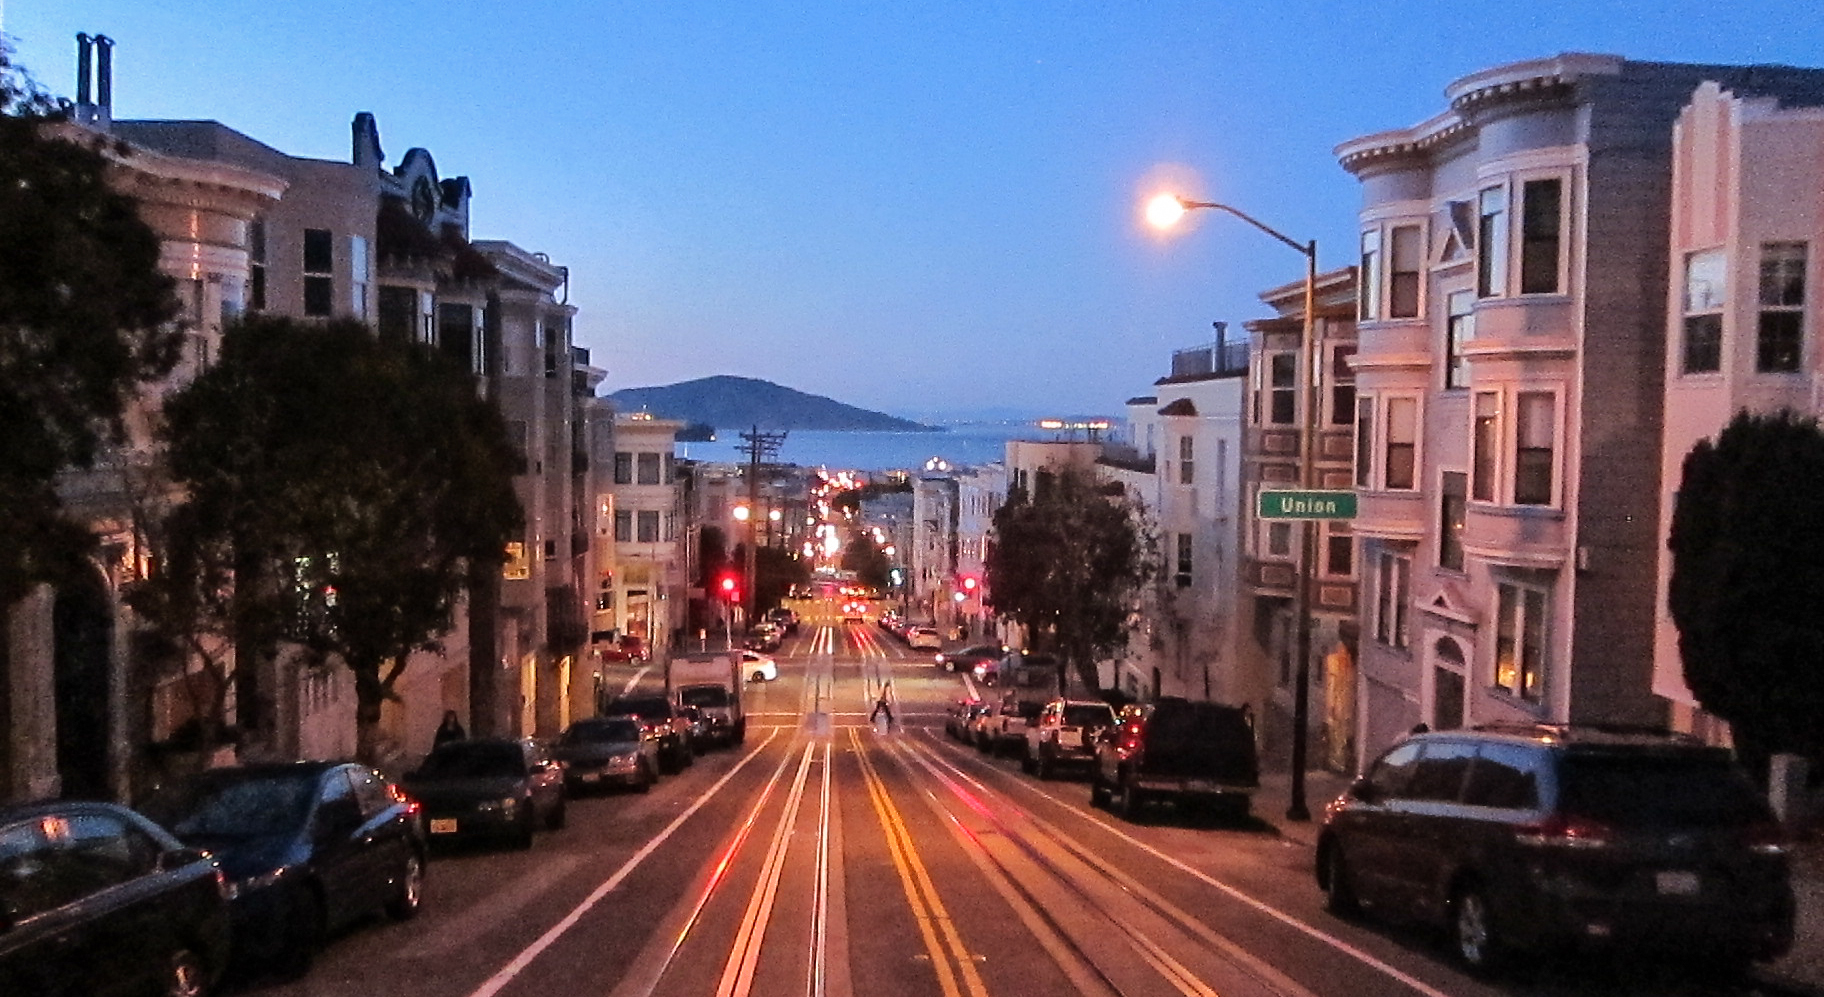 The view all the way down to Fisherman's Wharf.